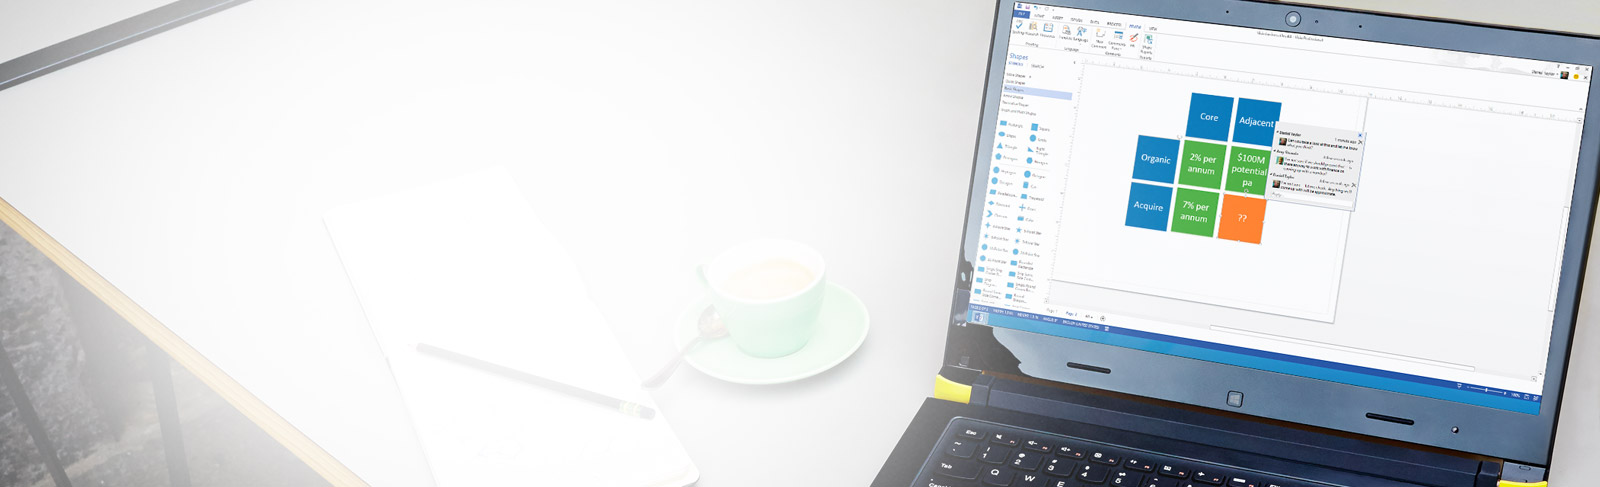 An open laptop, showing Visio Standard 2013 in use.